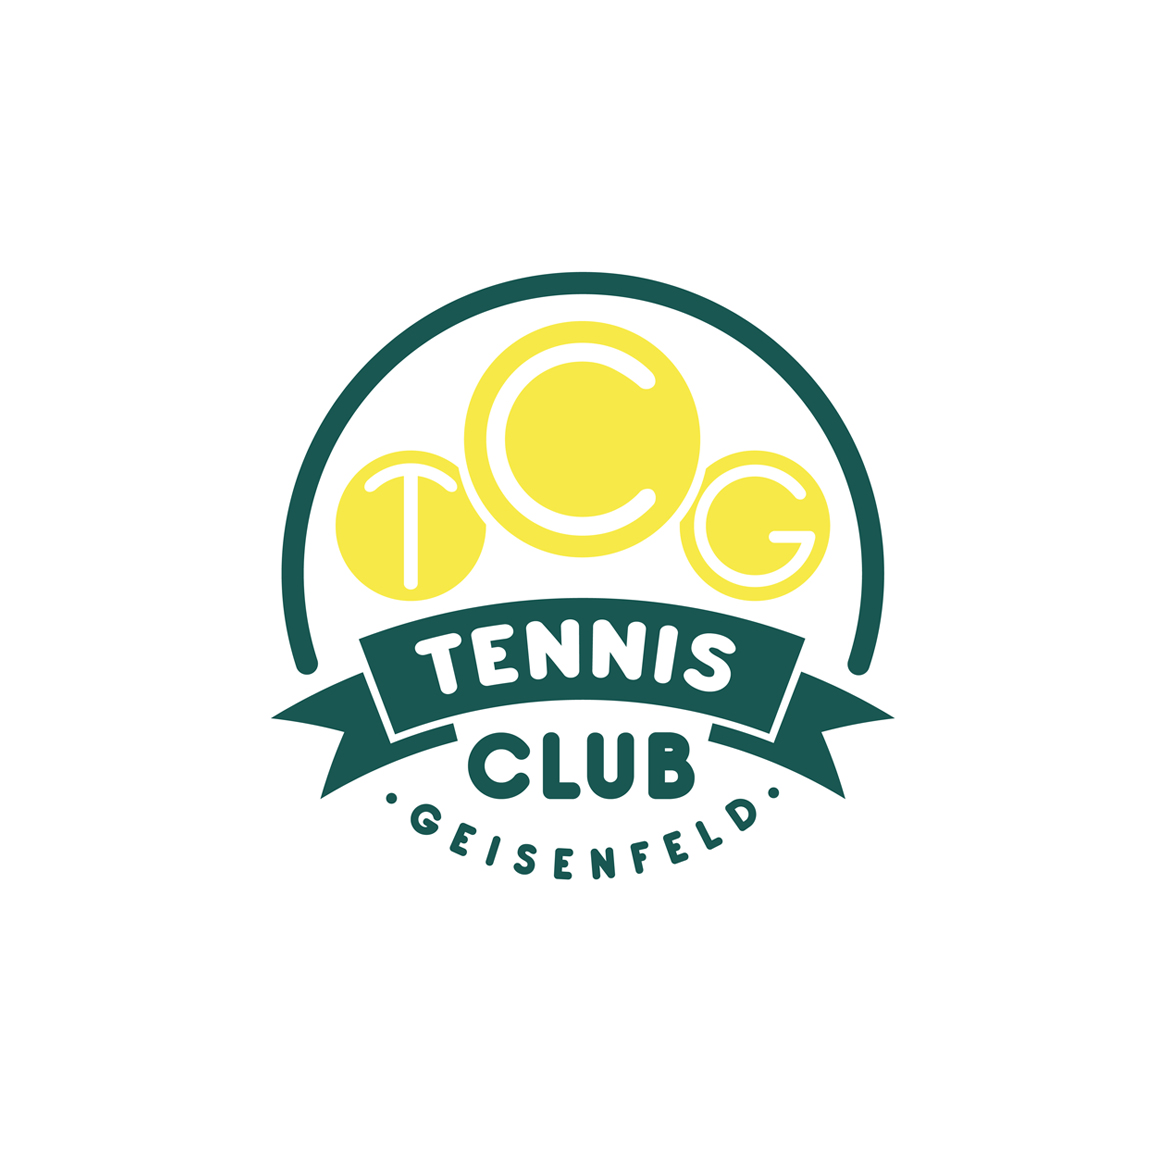 Tennis Club Logo Redesign